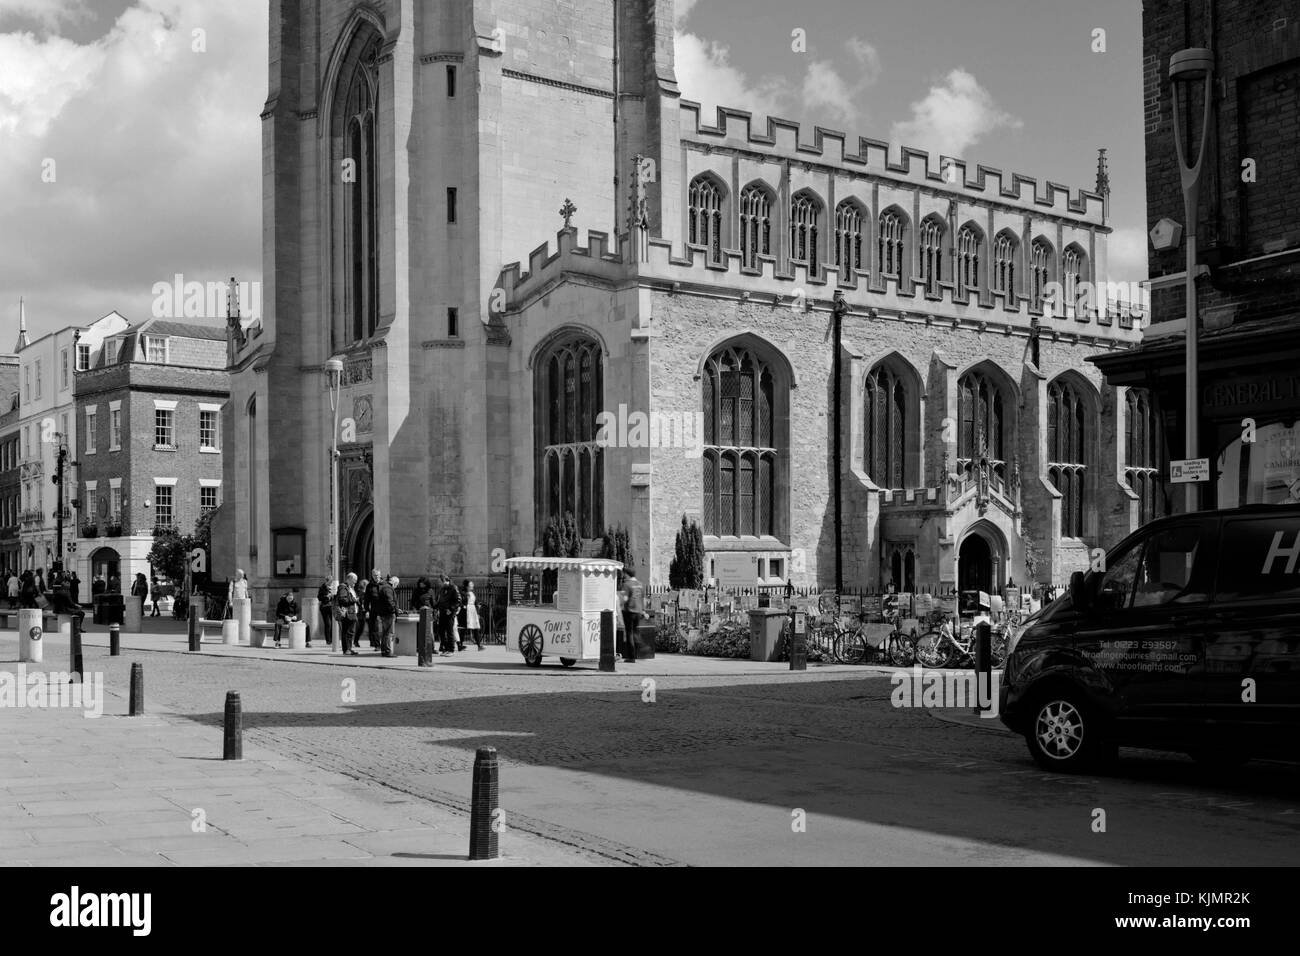 Great St Mary's Church on King's Parade Cambridge - Stock Image